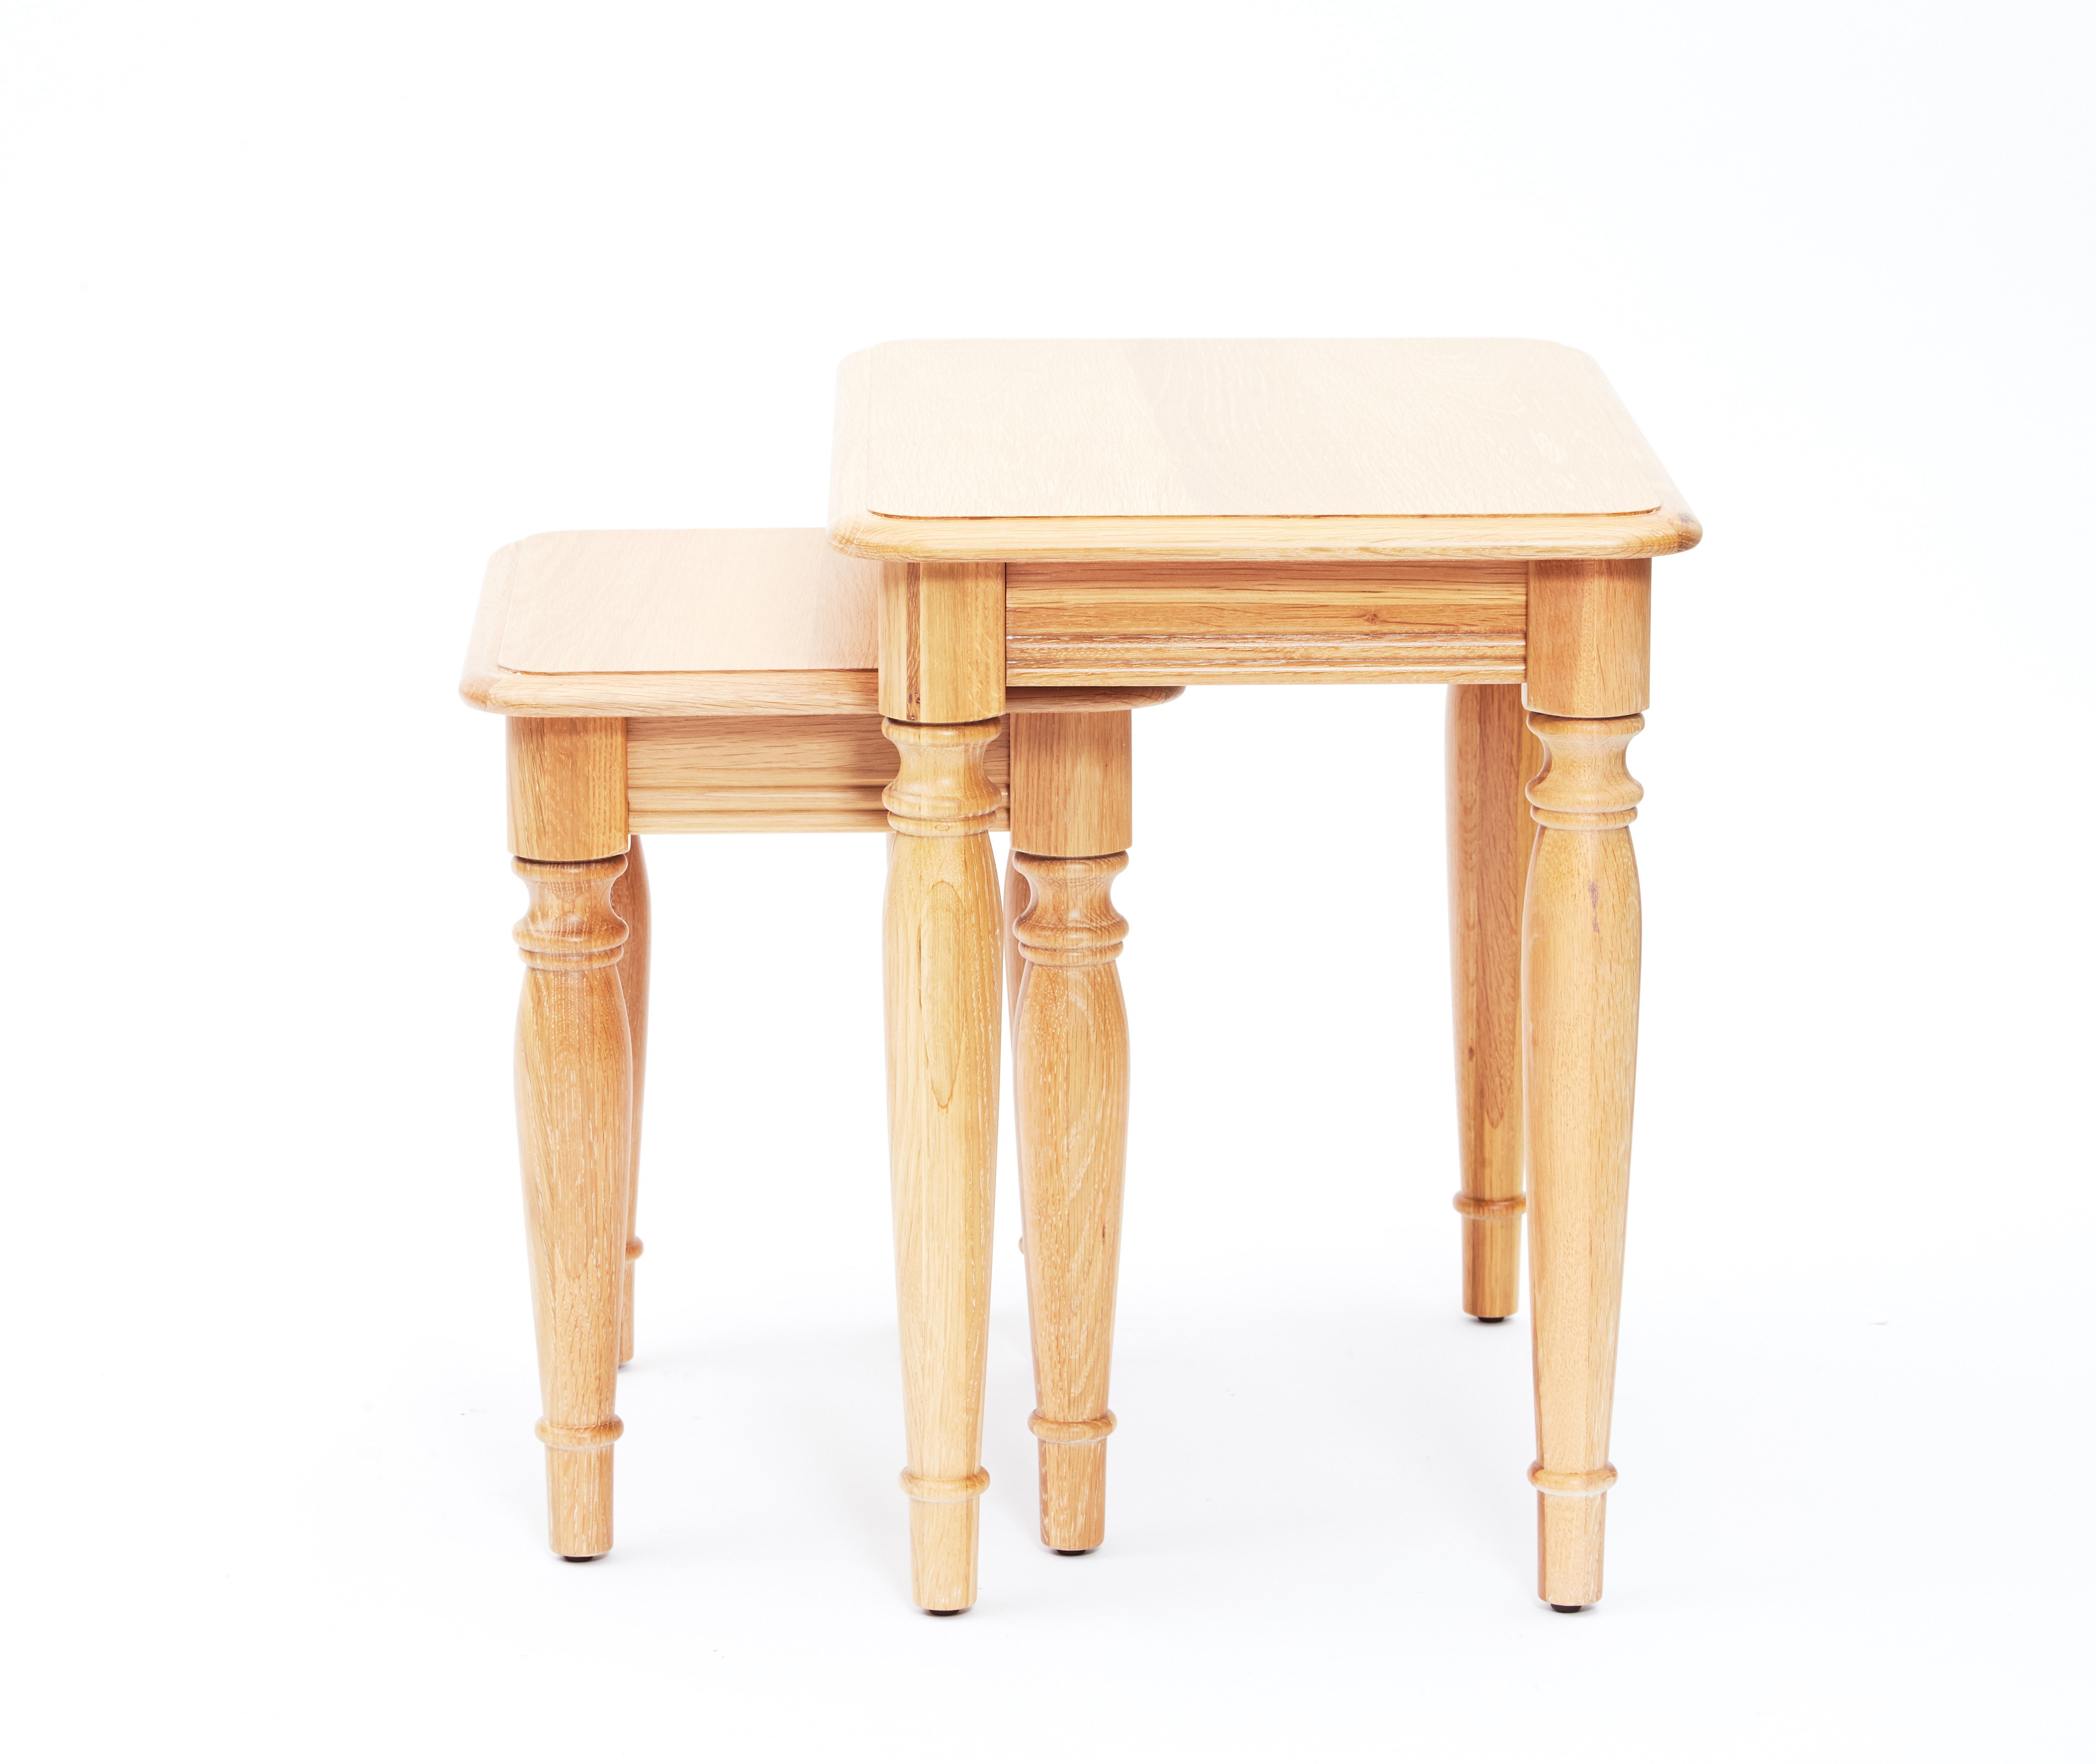 Siena Nest of Tables